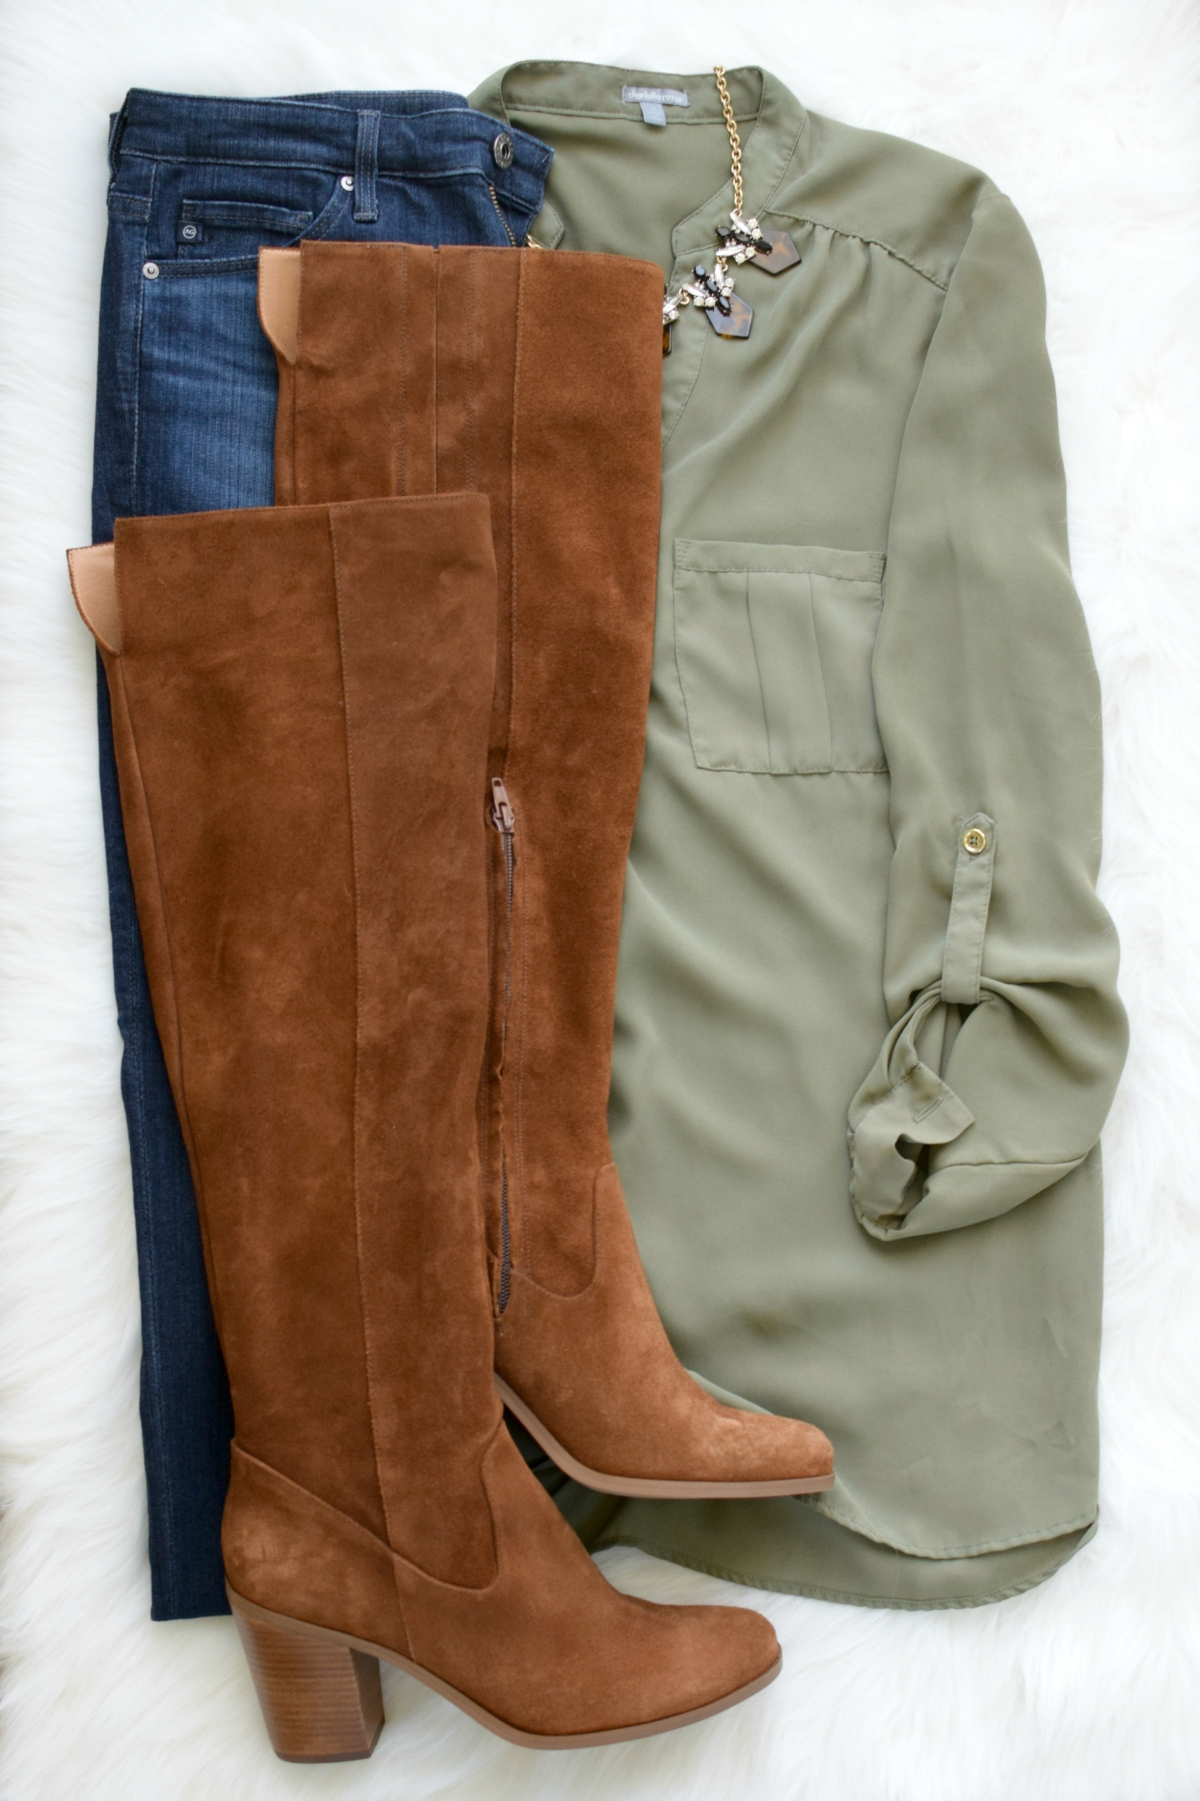 Olive and OTK boots for fall |www.pearlsandsportsbras.com|